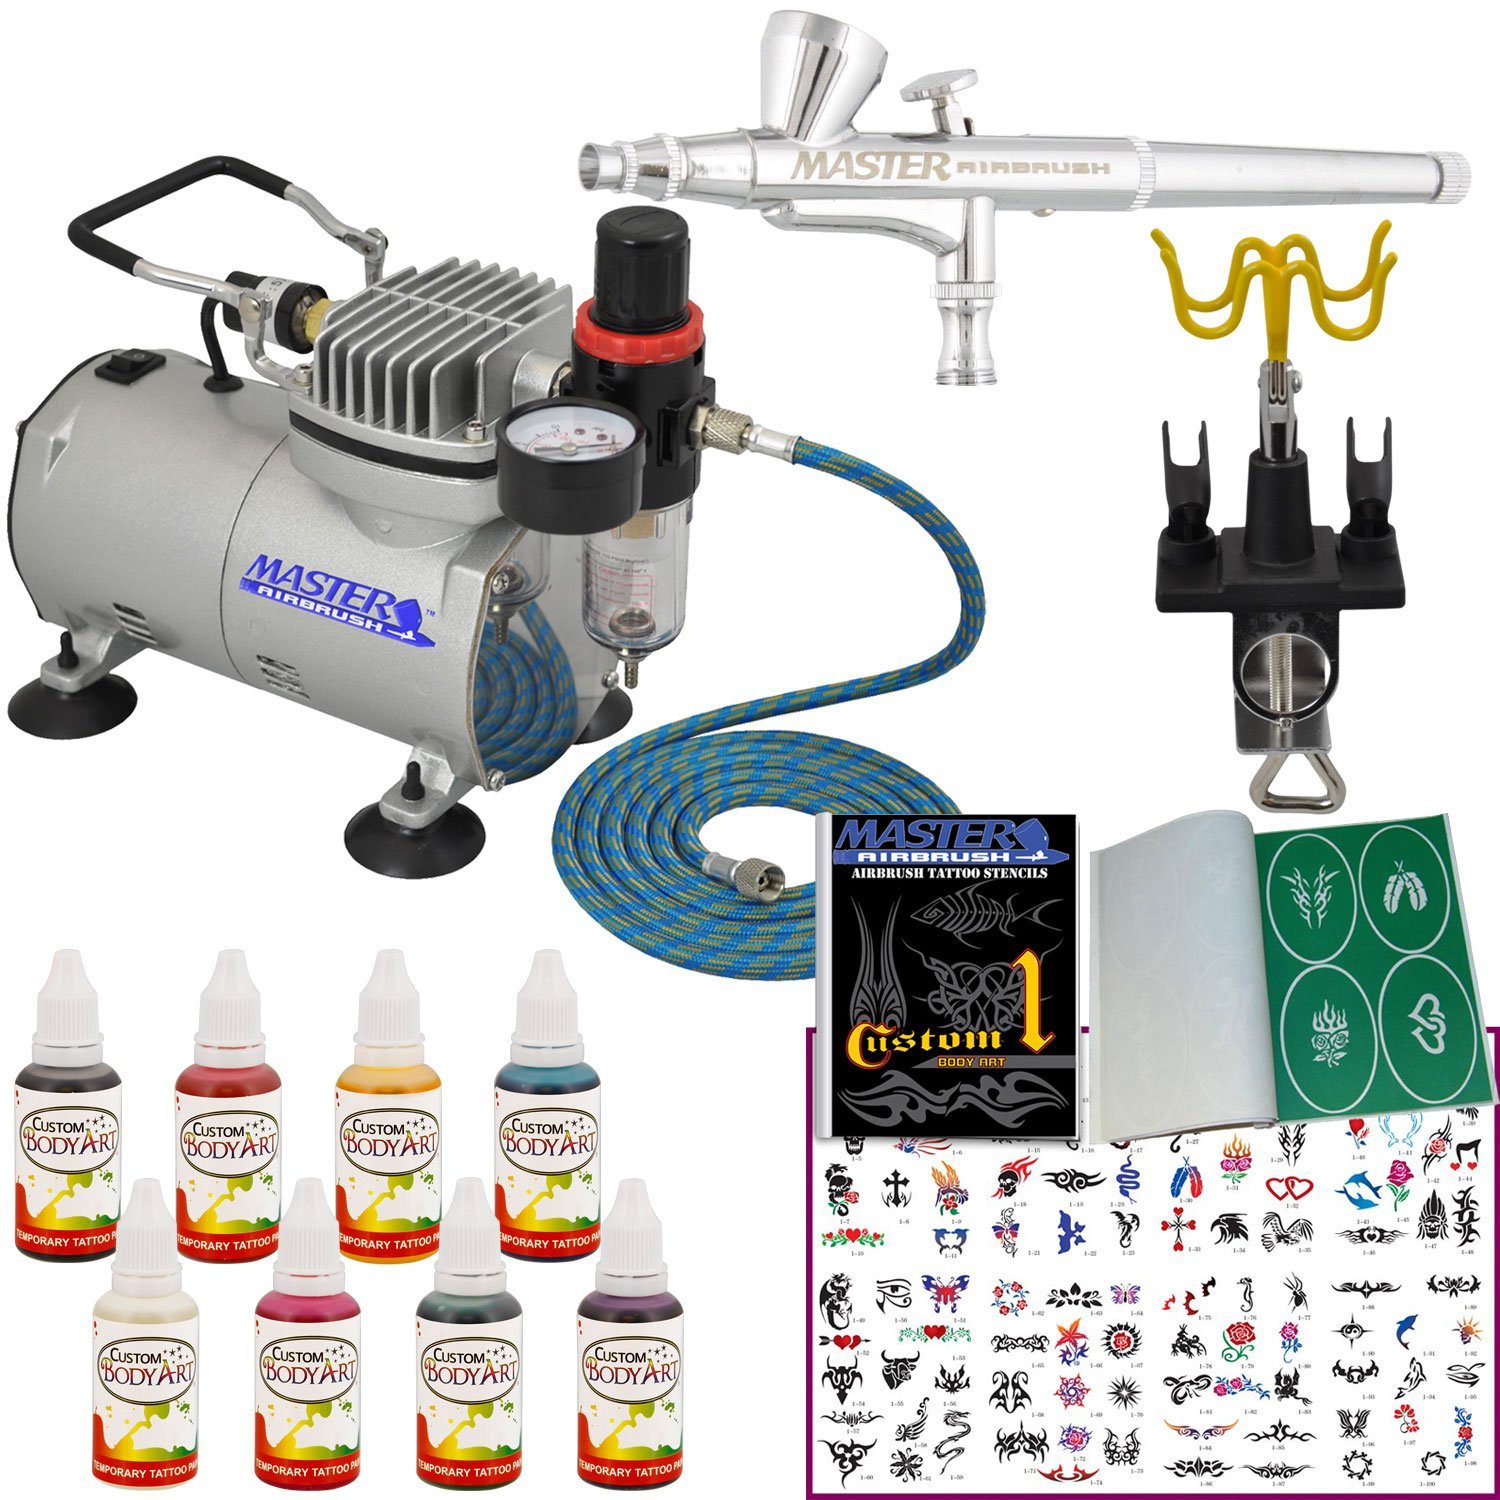 Master Airbrush Brand Deluxe Airbrush Tattoo KIT 8 Includes: Compressor, Hose, Airbrush, 8 Popular INK Colors, and Stencils